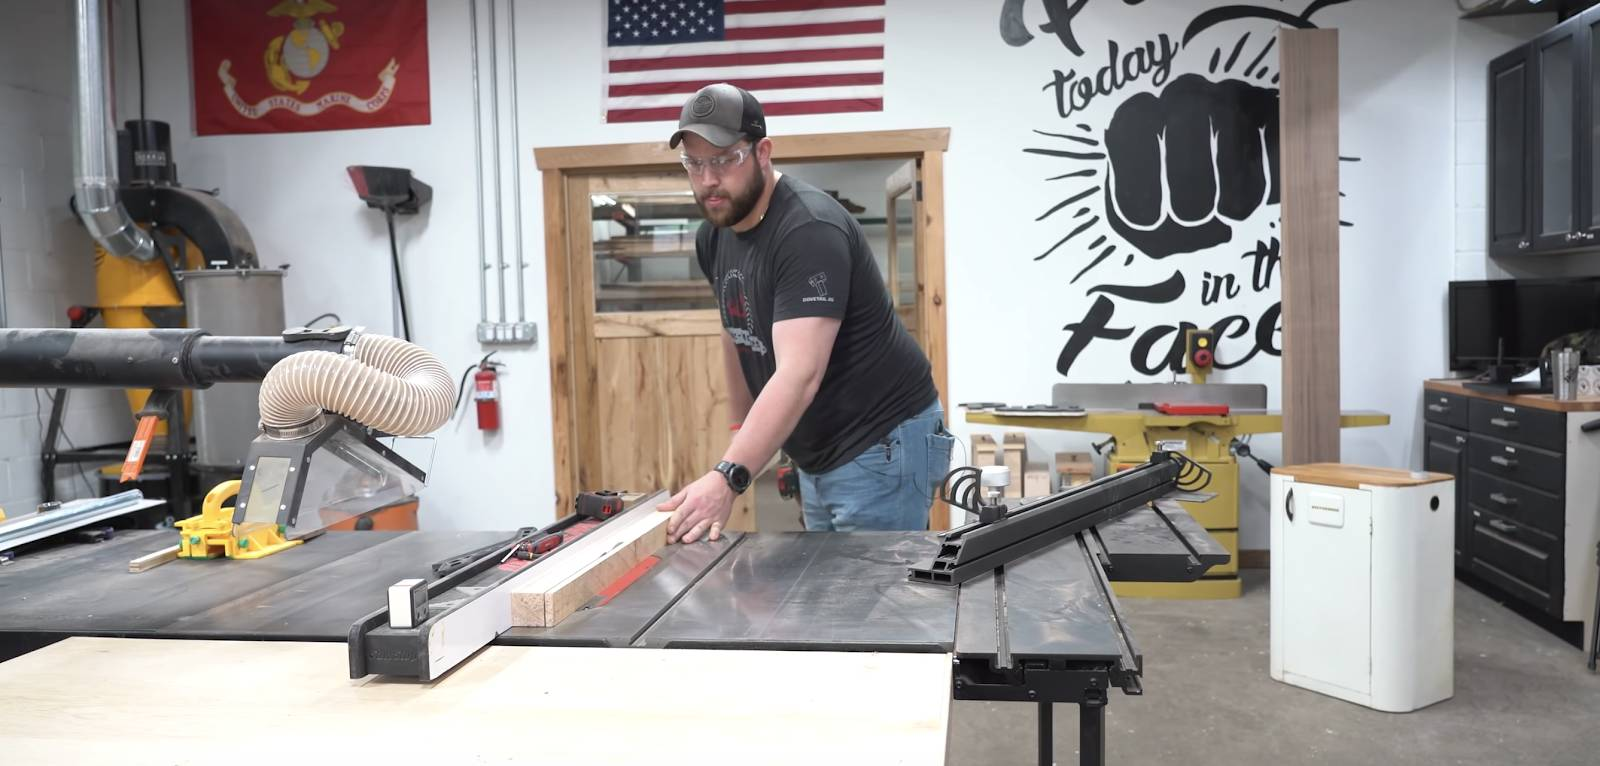 John Malecki cuts lumber for a DIY pizza peel